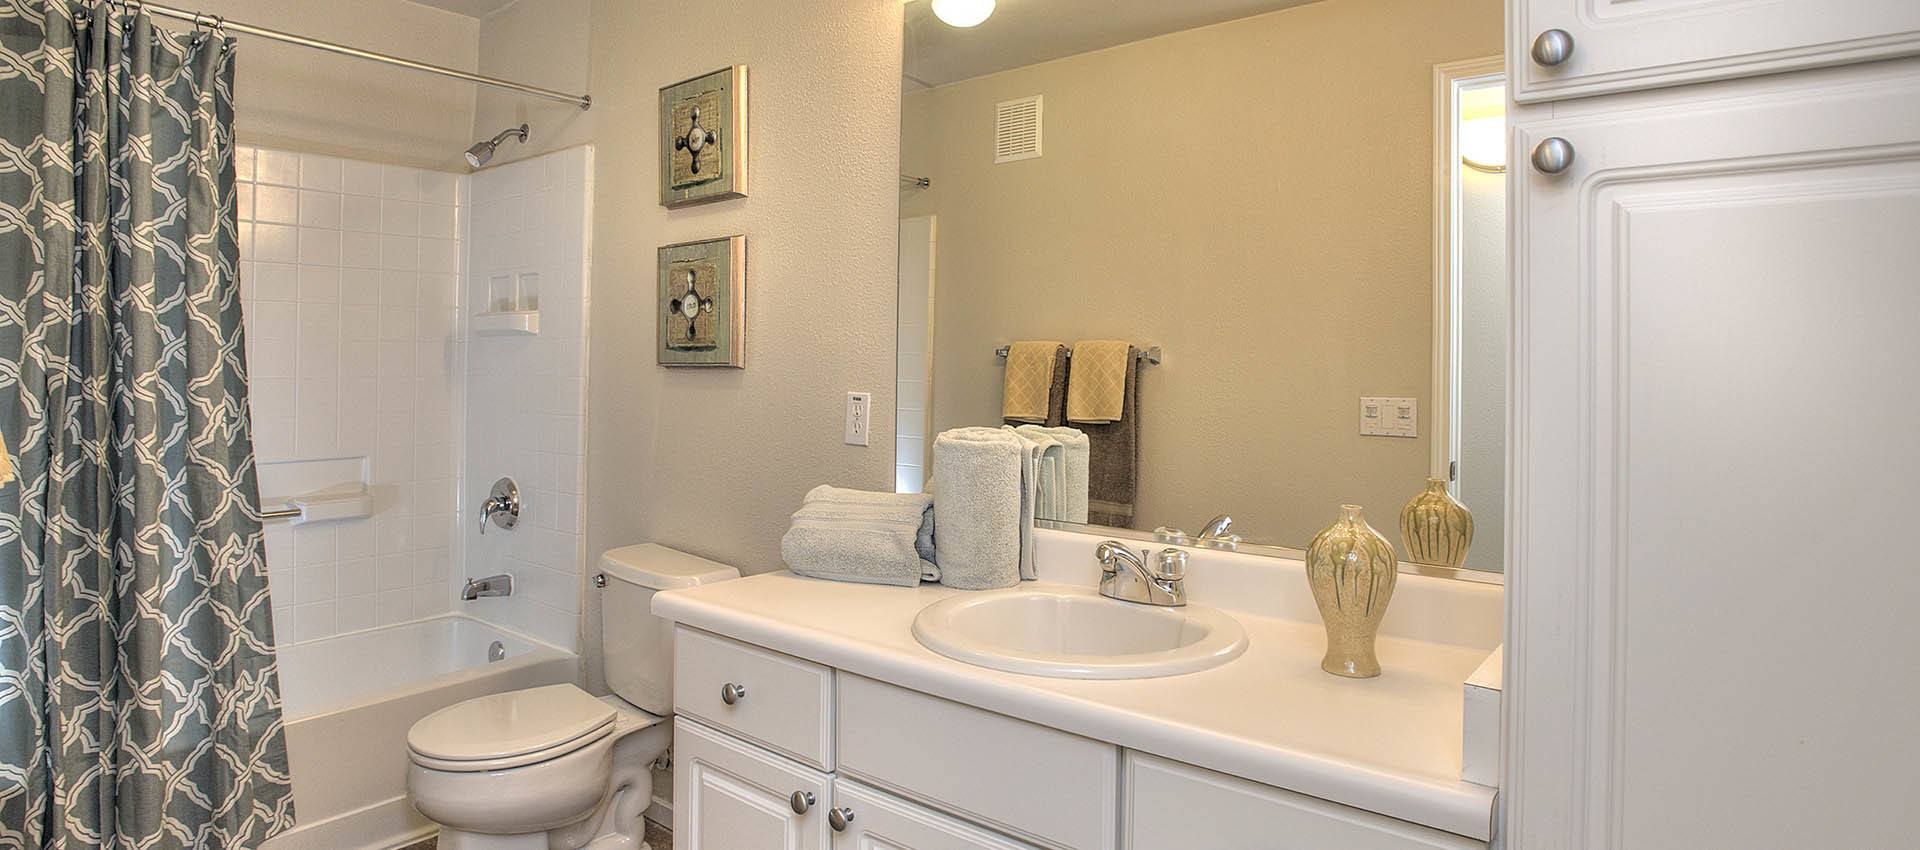 Bathroom with white cabinets at Cross Pointe Apartment Homes in Antioch